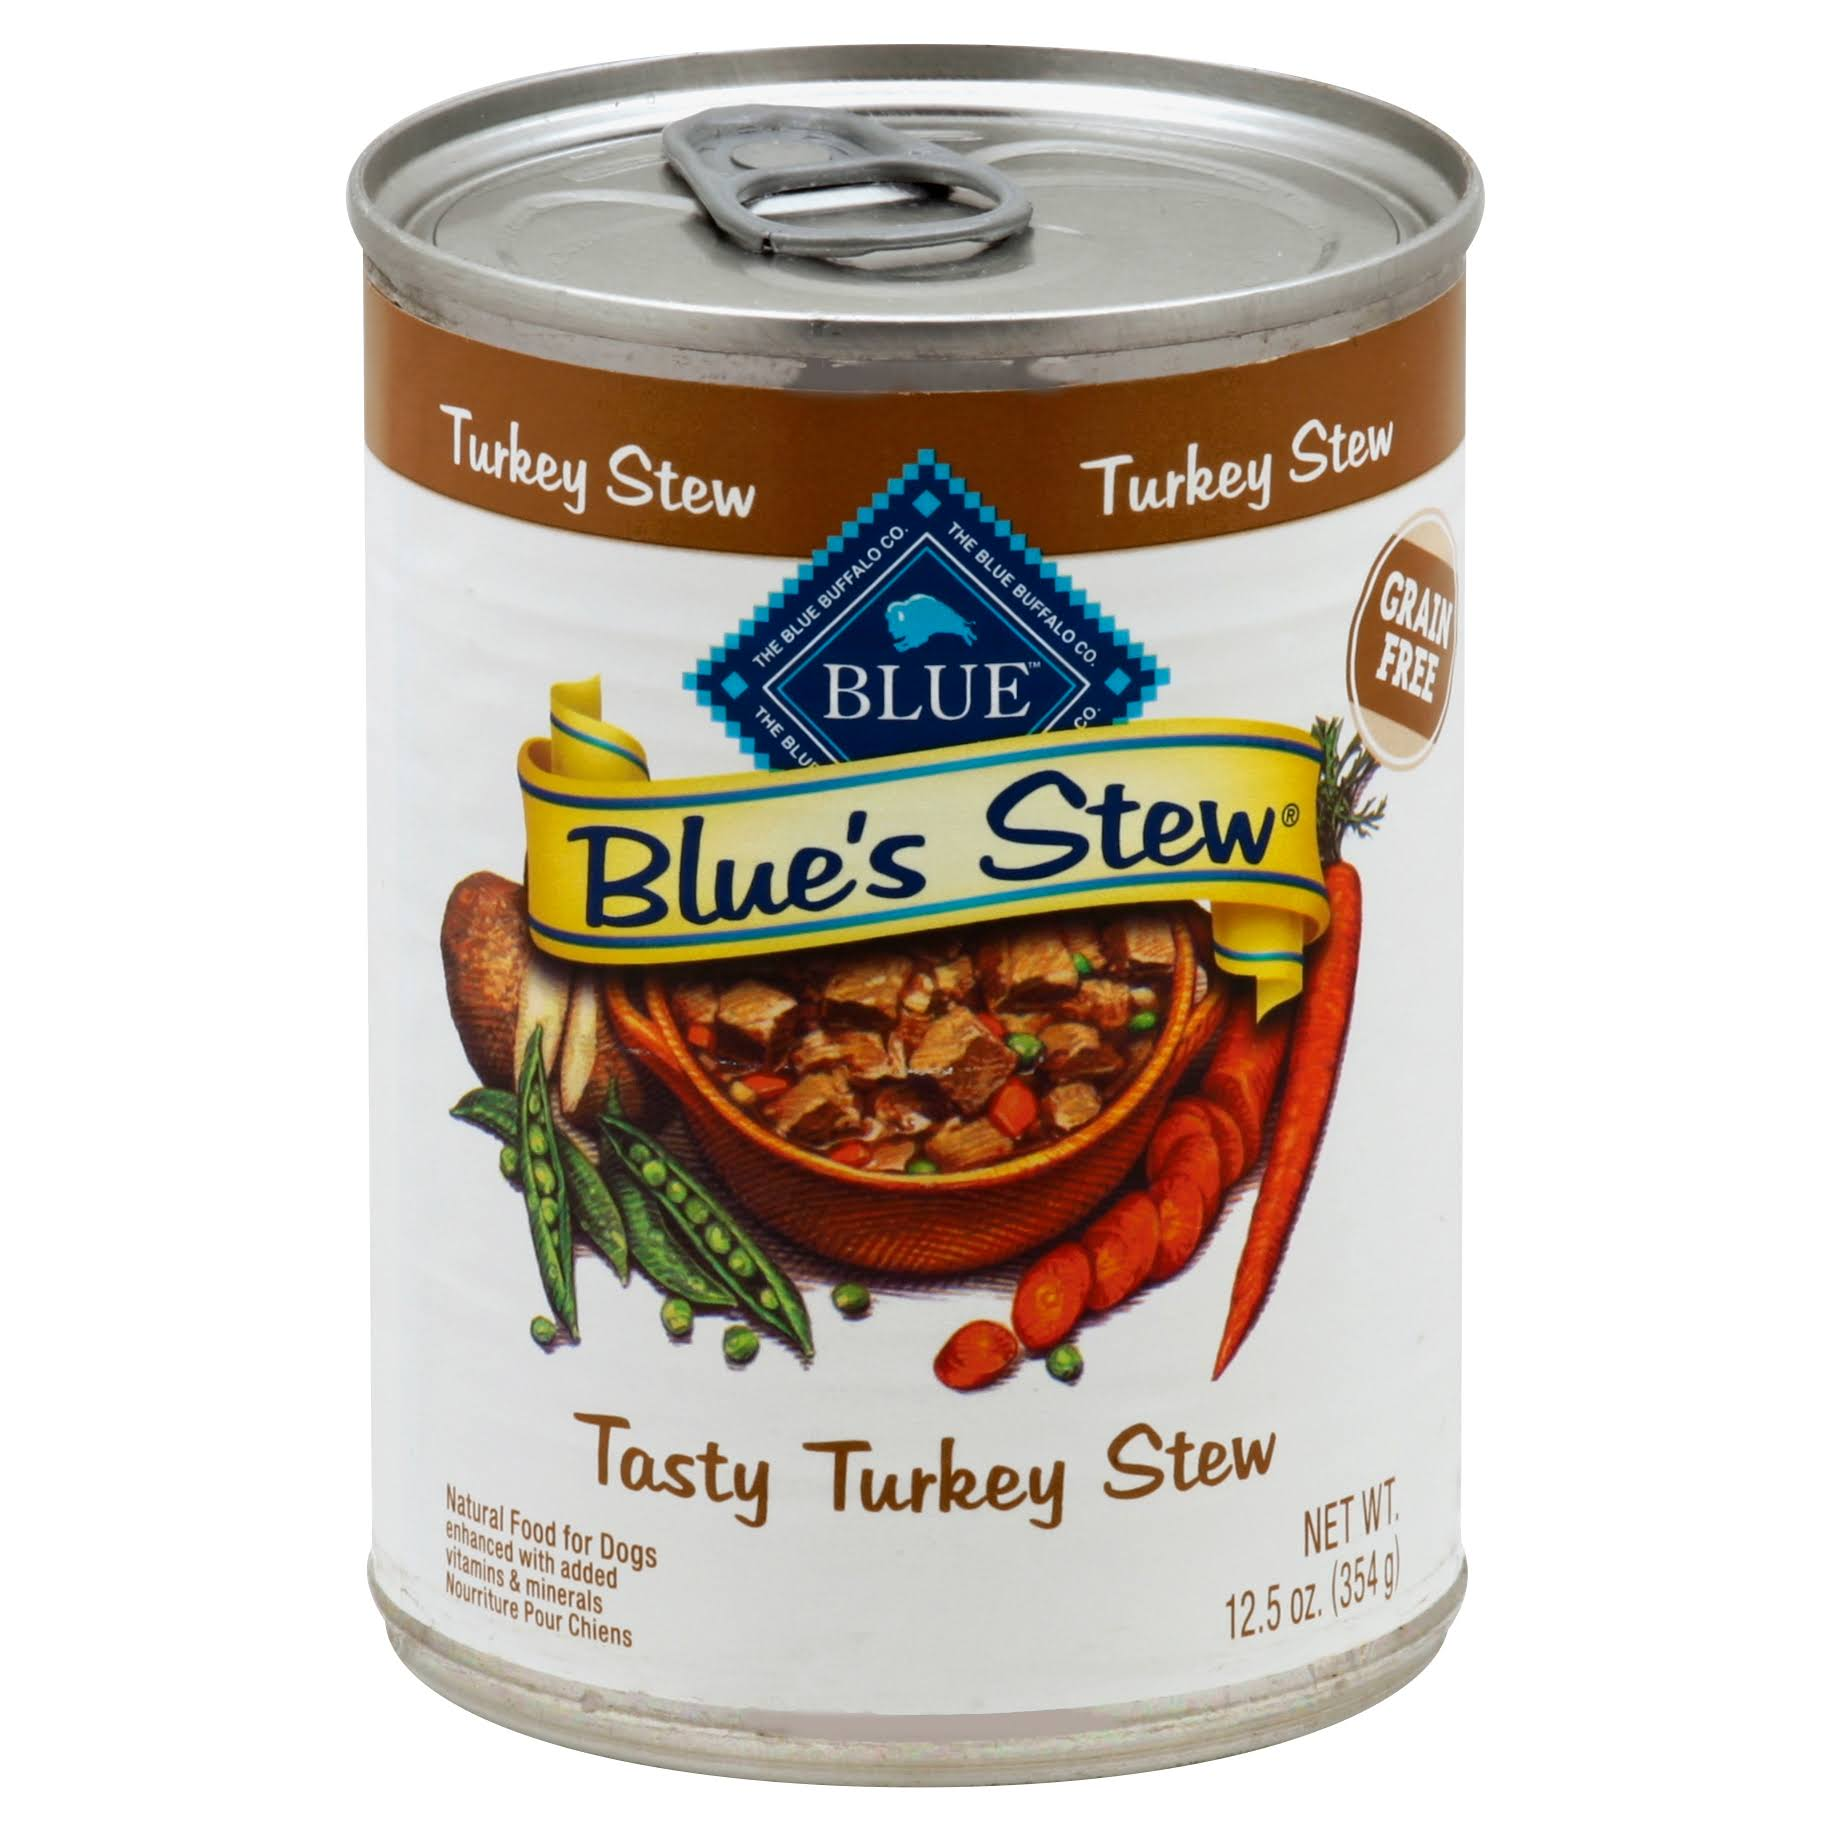 Blue Blue's Stew Dog Food - Tasty Turkey Stew